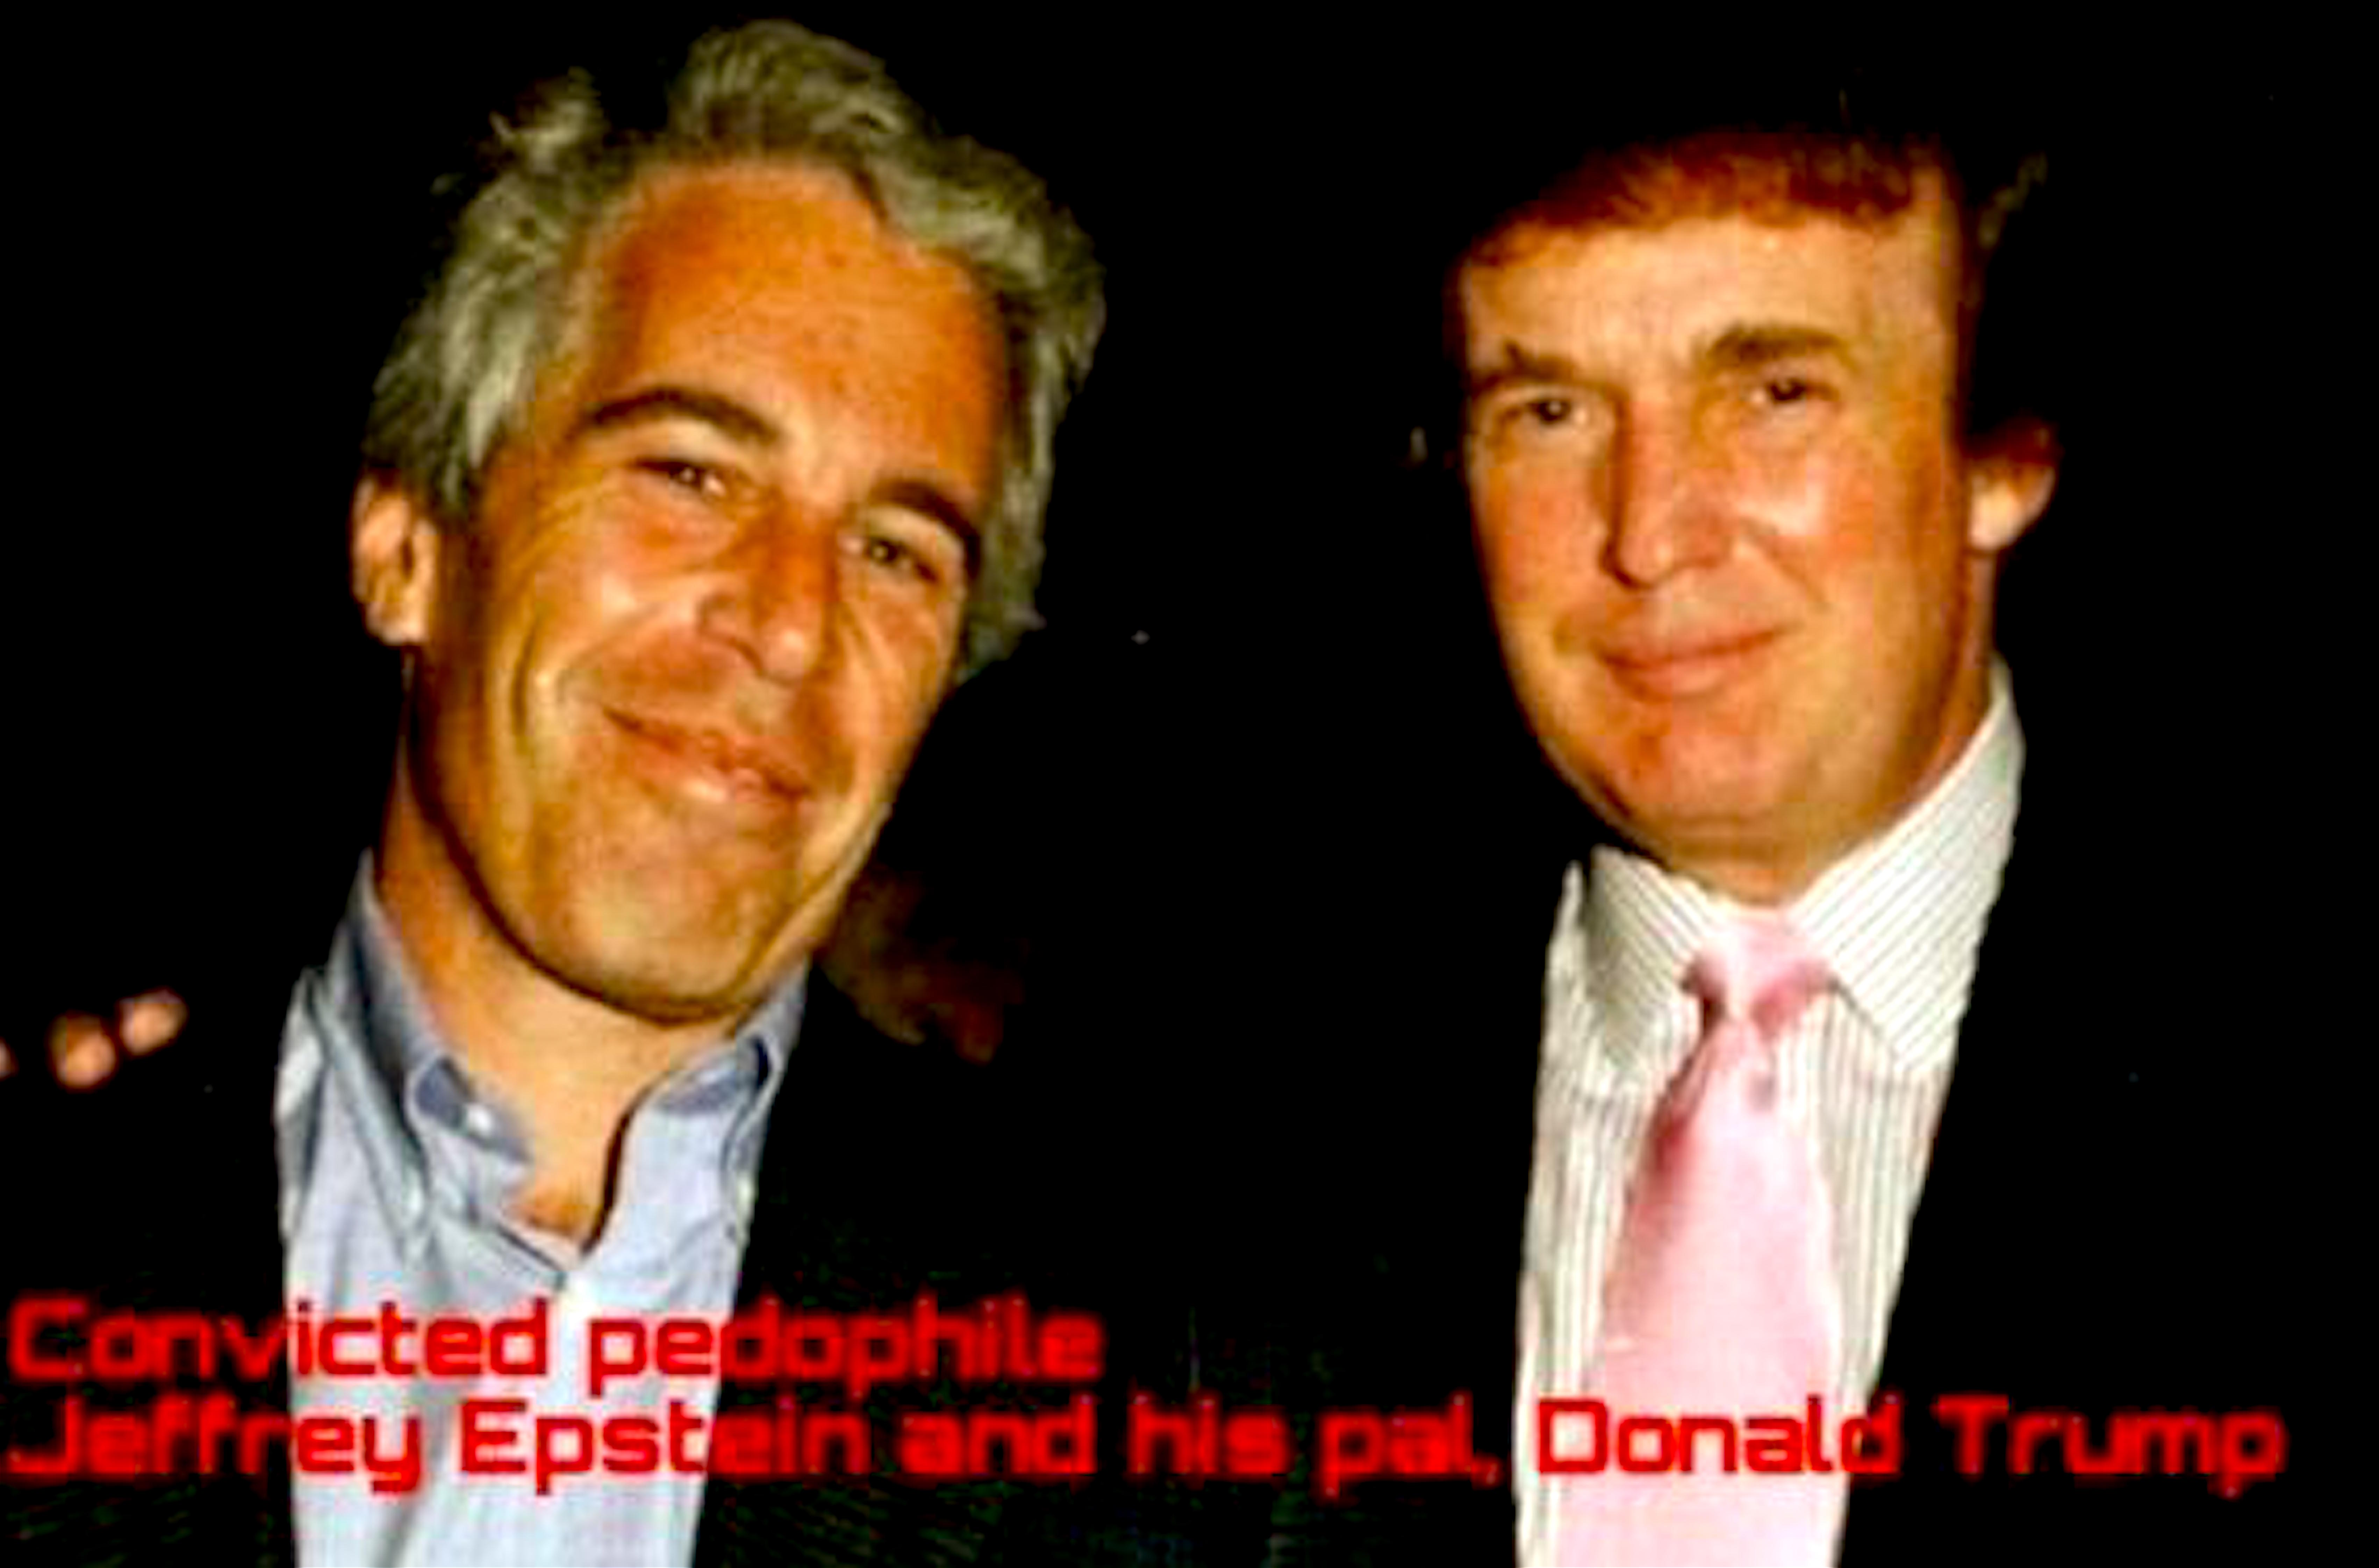 Convicted pedophile Jefferey Epstein and his pal Donald Trump (foto Tom Heneghan Briefings)